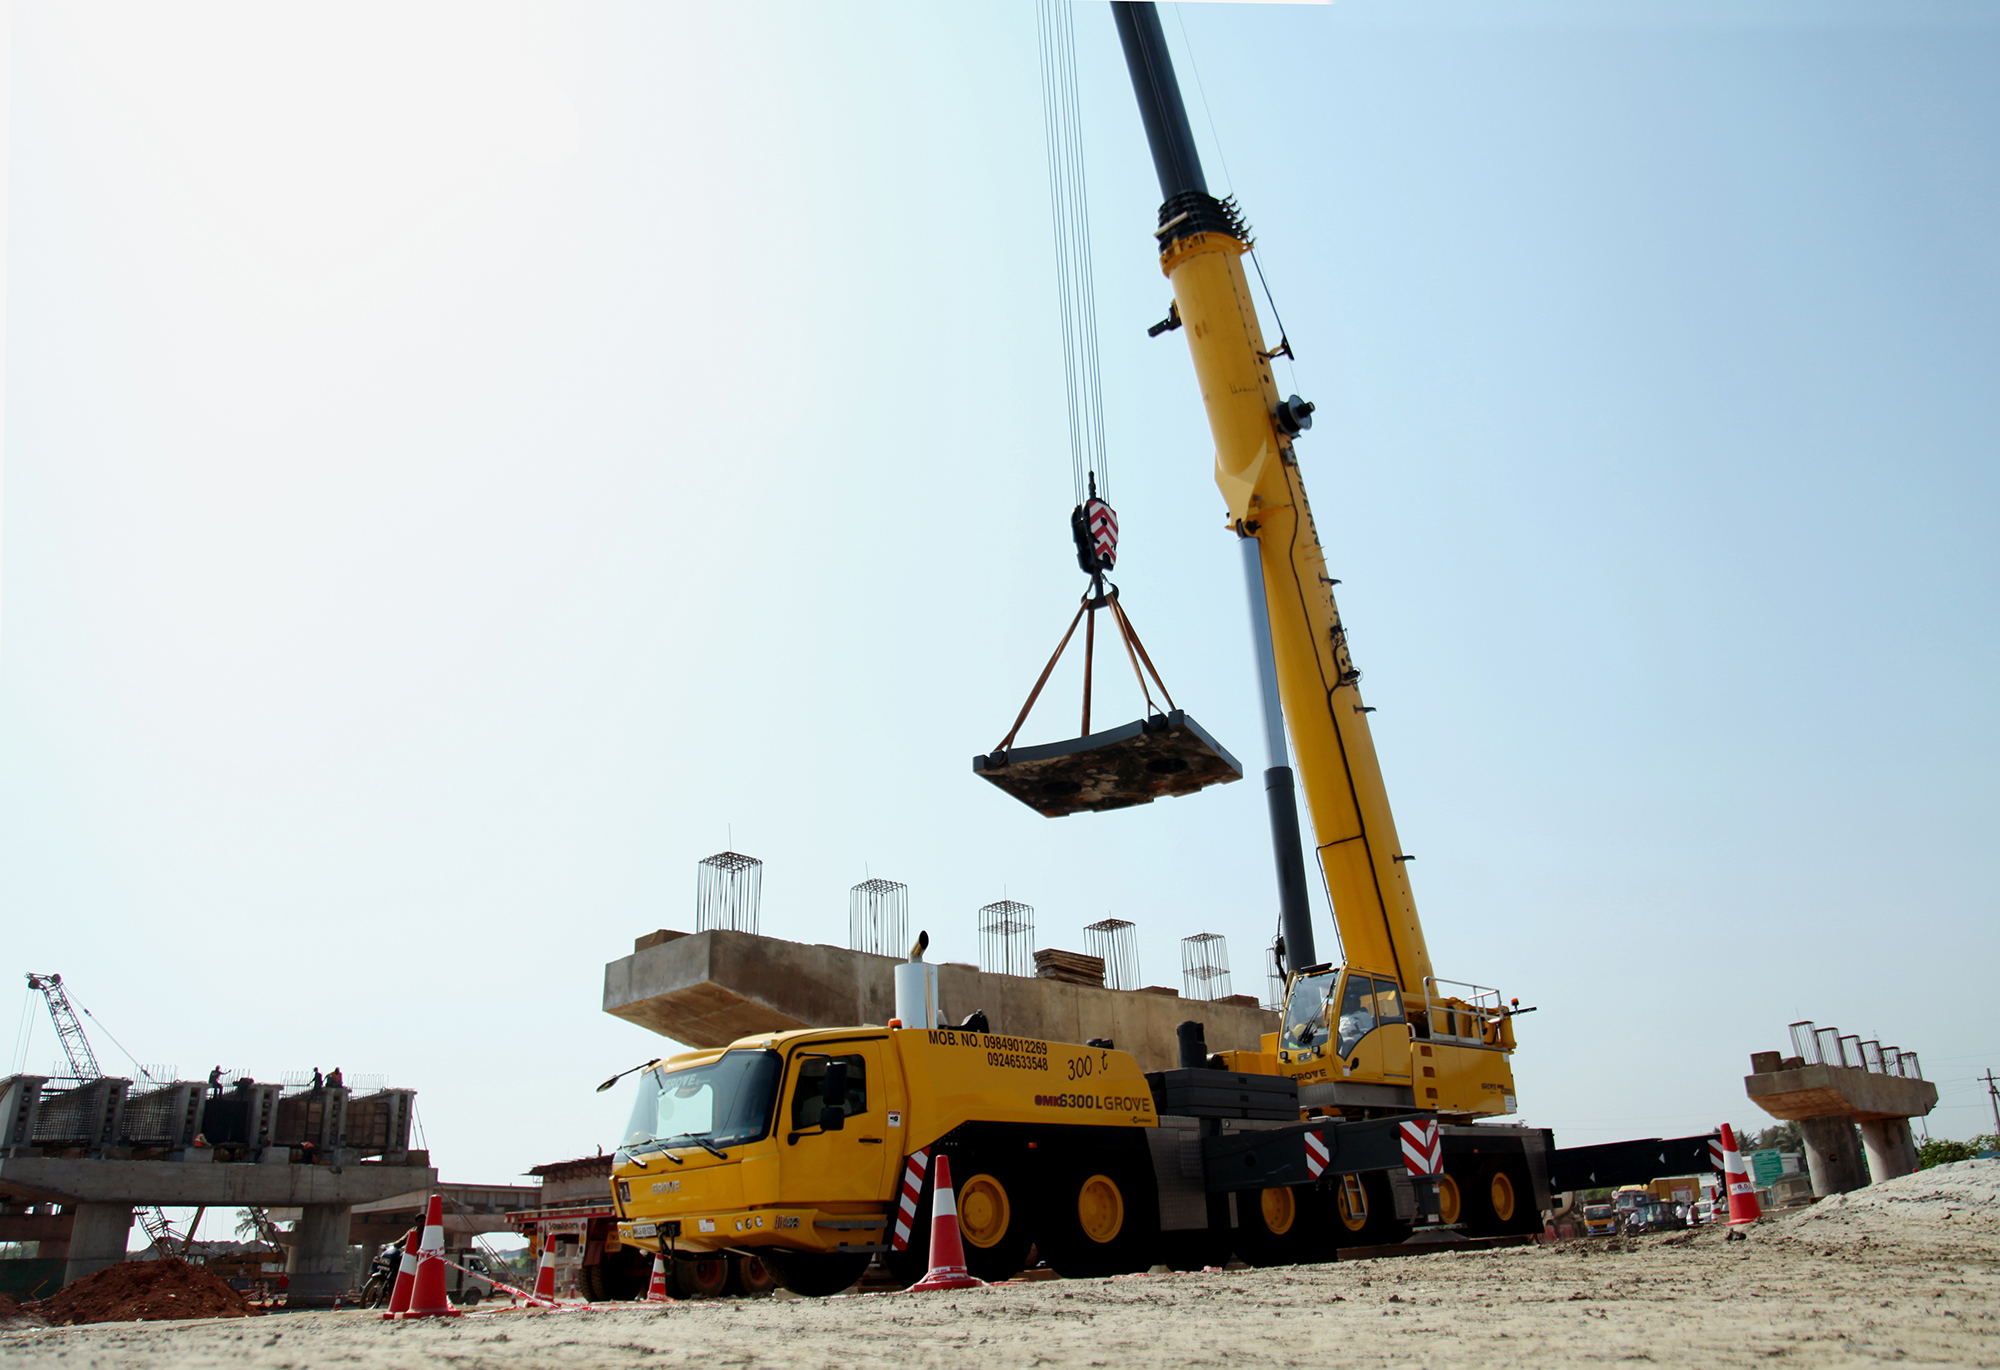 GMK6300L purchase by Modern Cranes signals progressive industry shifts in India-1.jpg